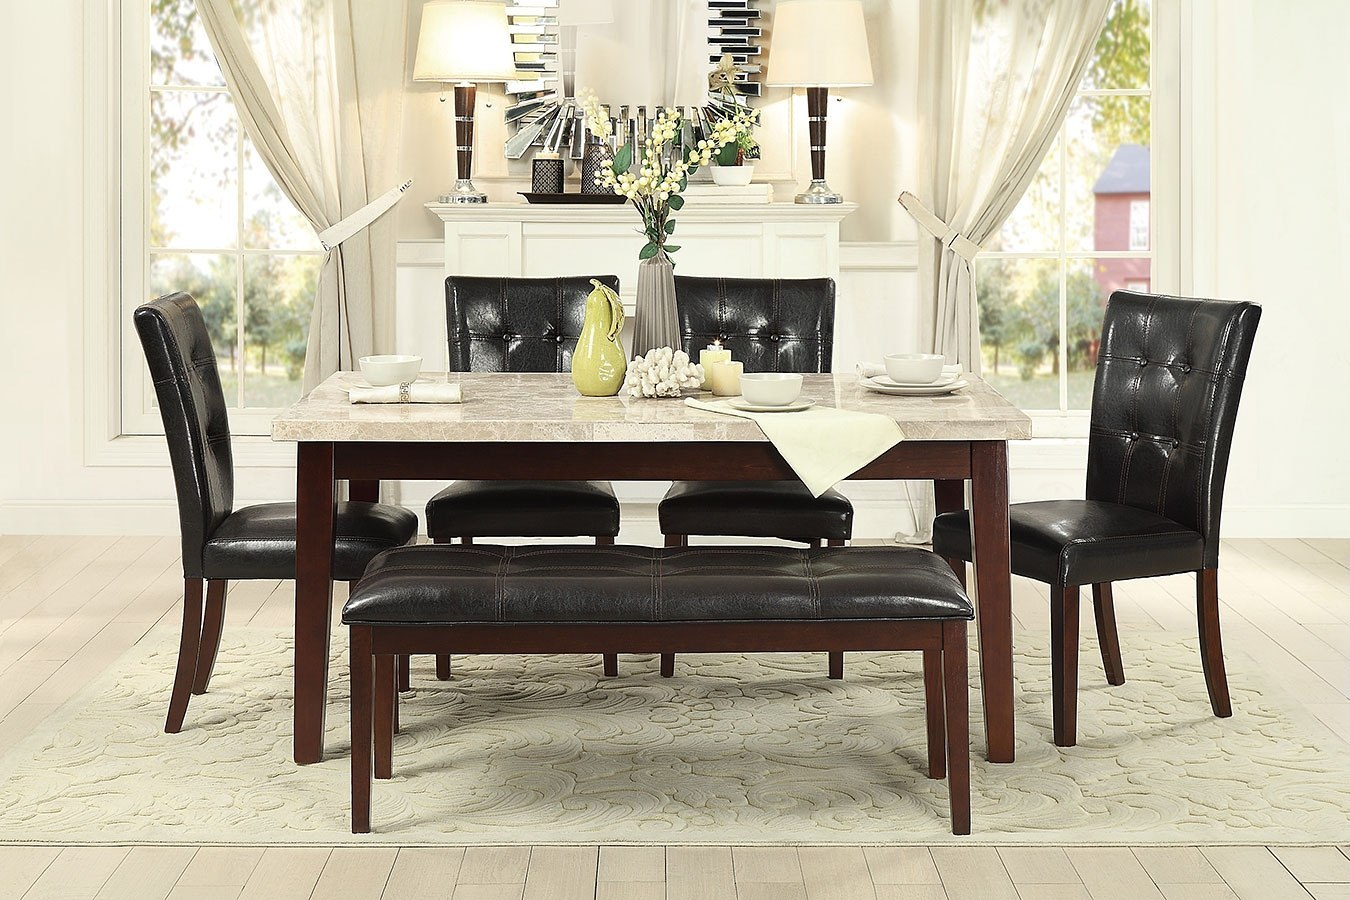 Decatur Dining Room Set w/ Bench (White Marble Top)